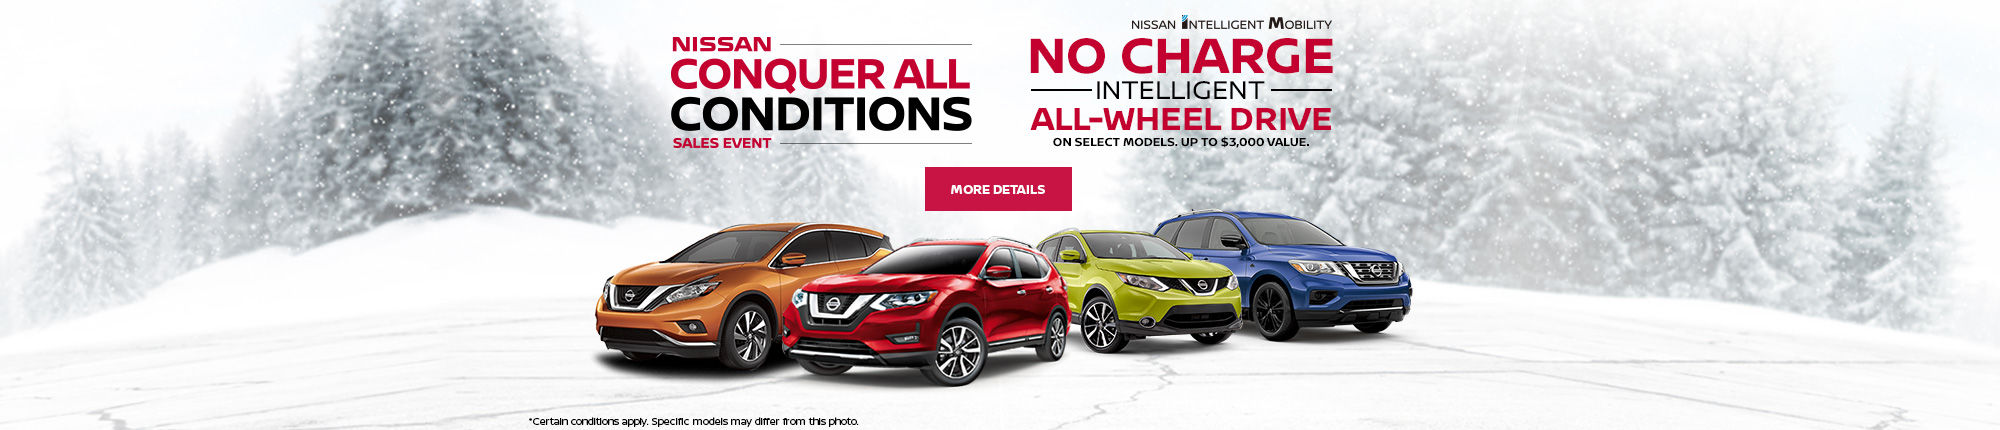 Nissan Conquer all conditions Event